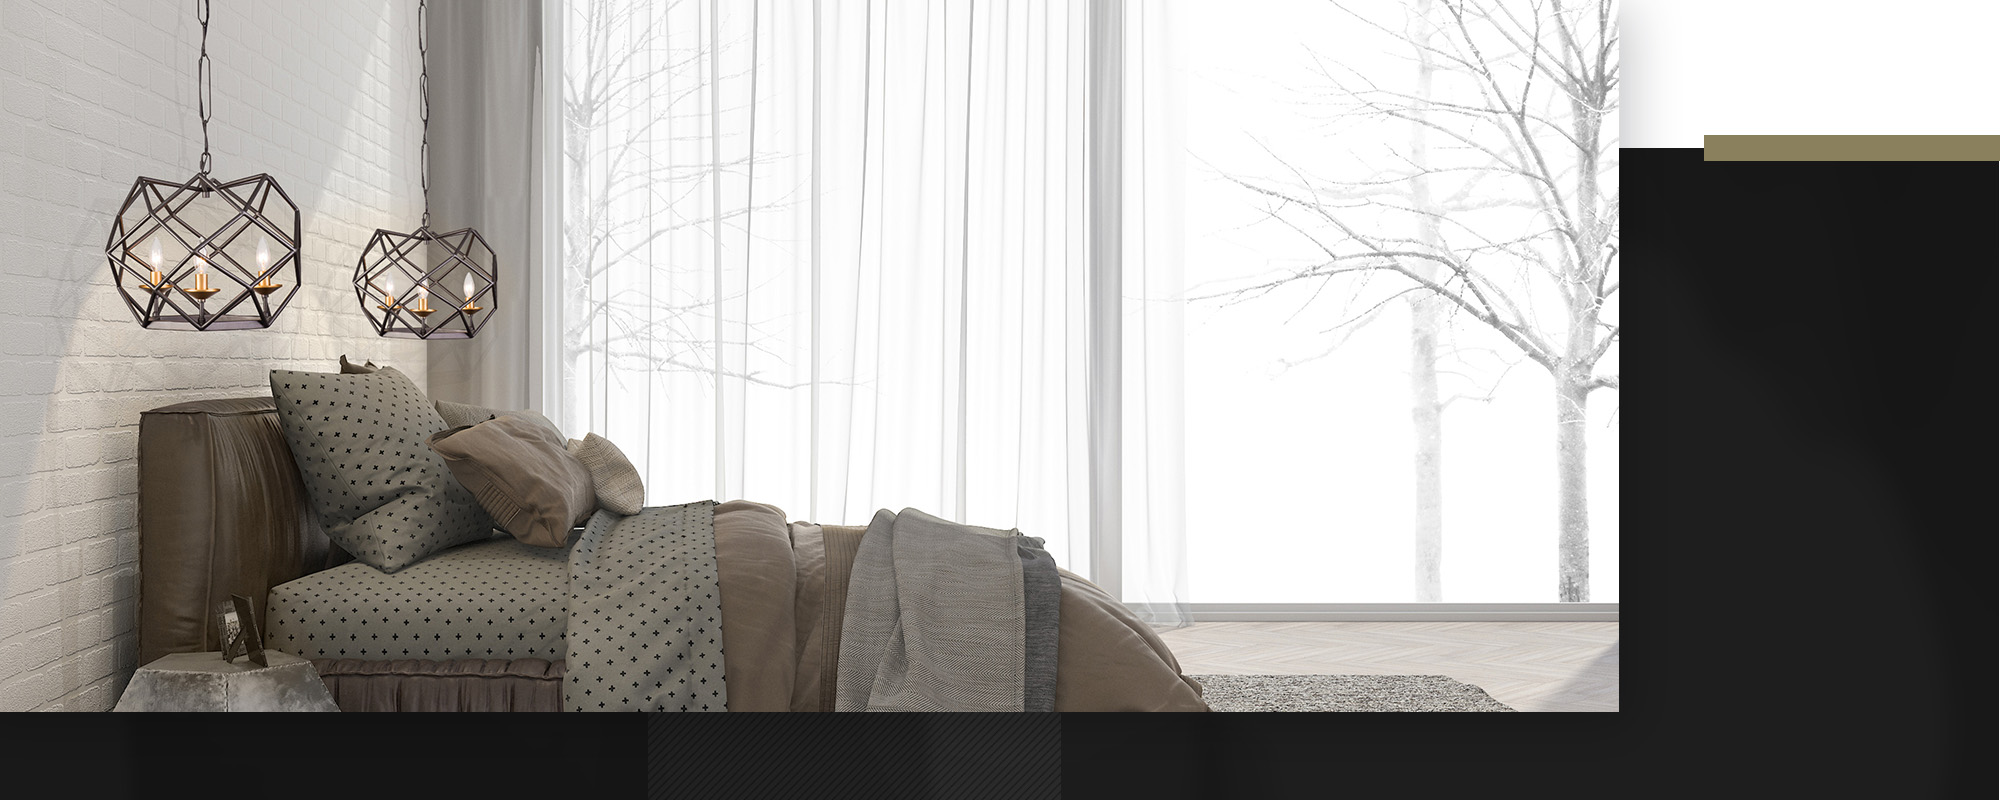 Bedroom Lighting Tips Discover New Ways To Improve Your Home Hortons Home Lighting